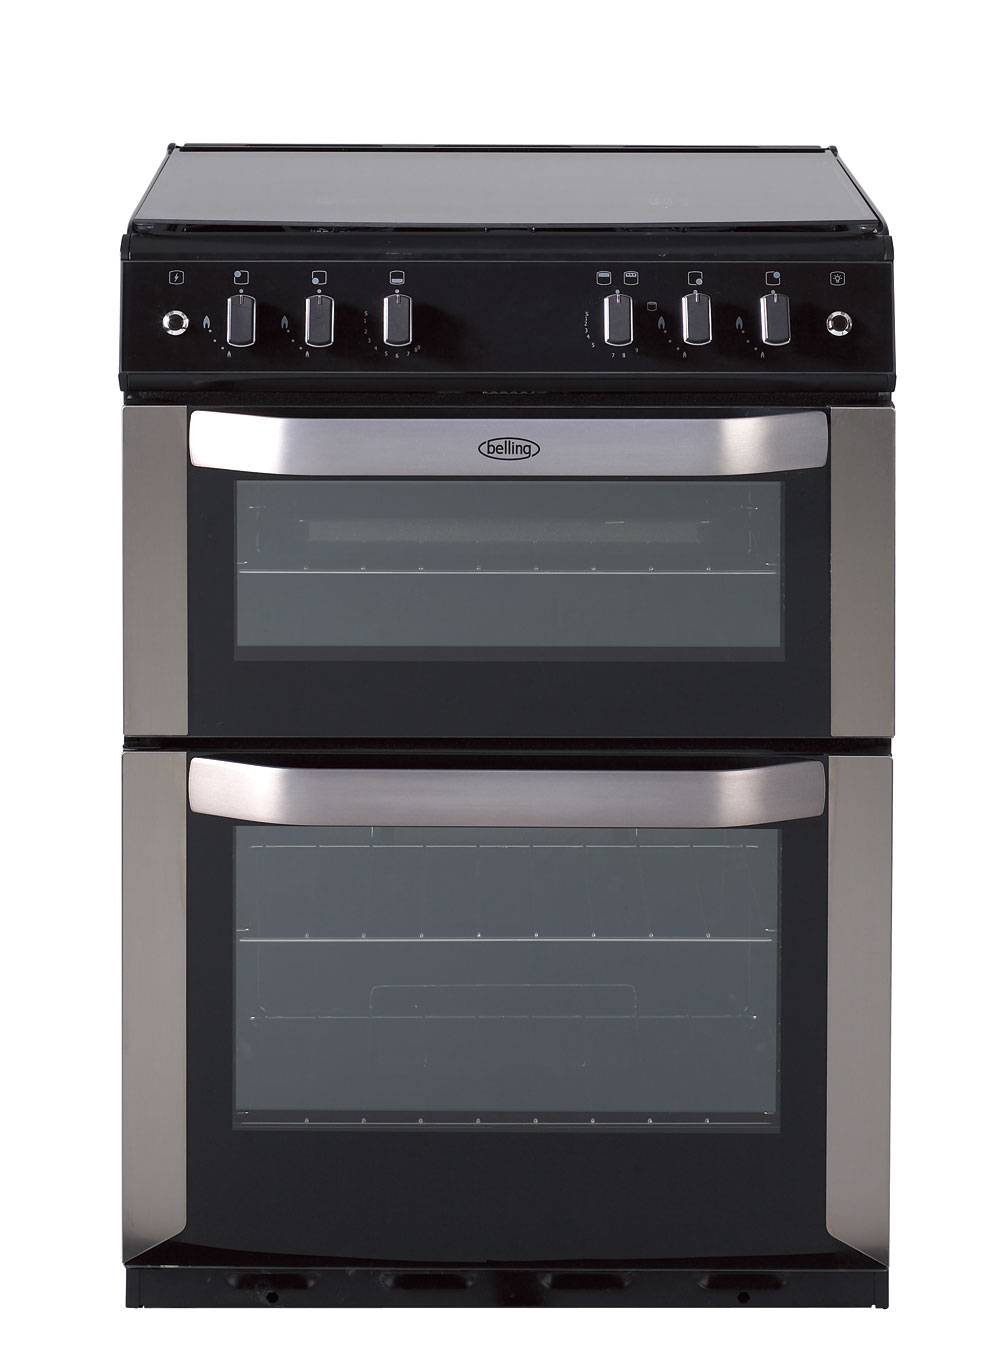 Uncategorized Kitchen Appliances Buy Now Pay Later buy now pay later 0 apr page 438 dalzells of markethill belling fsg60do gas double oven stainless steel